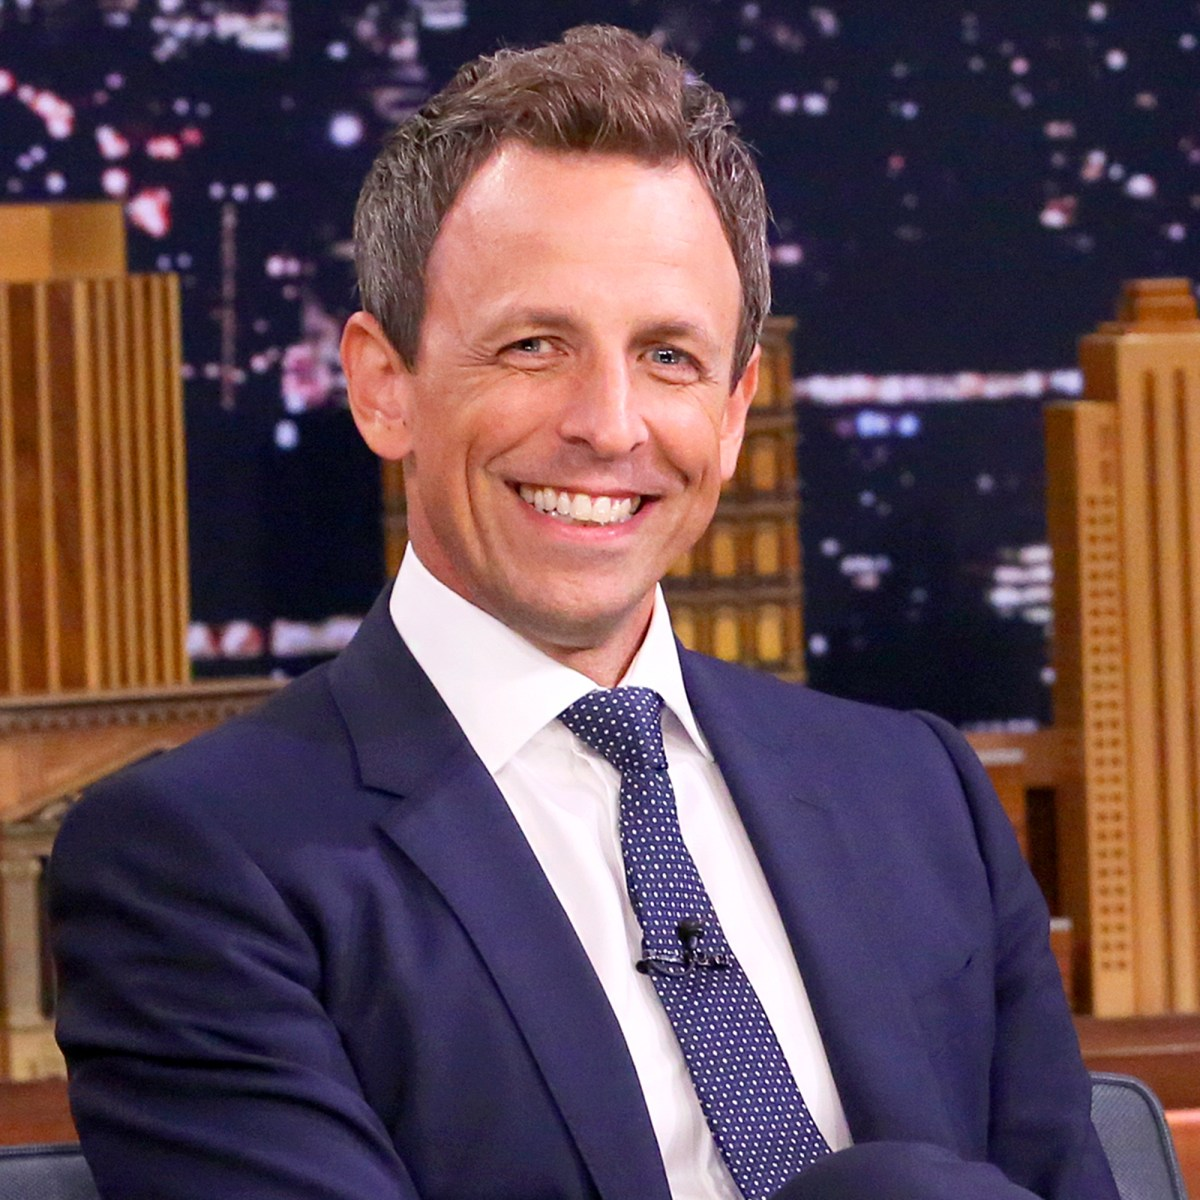 Seth Meyers on the Tonight Show starring Jimmy Fallon on September 11, 2017.